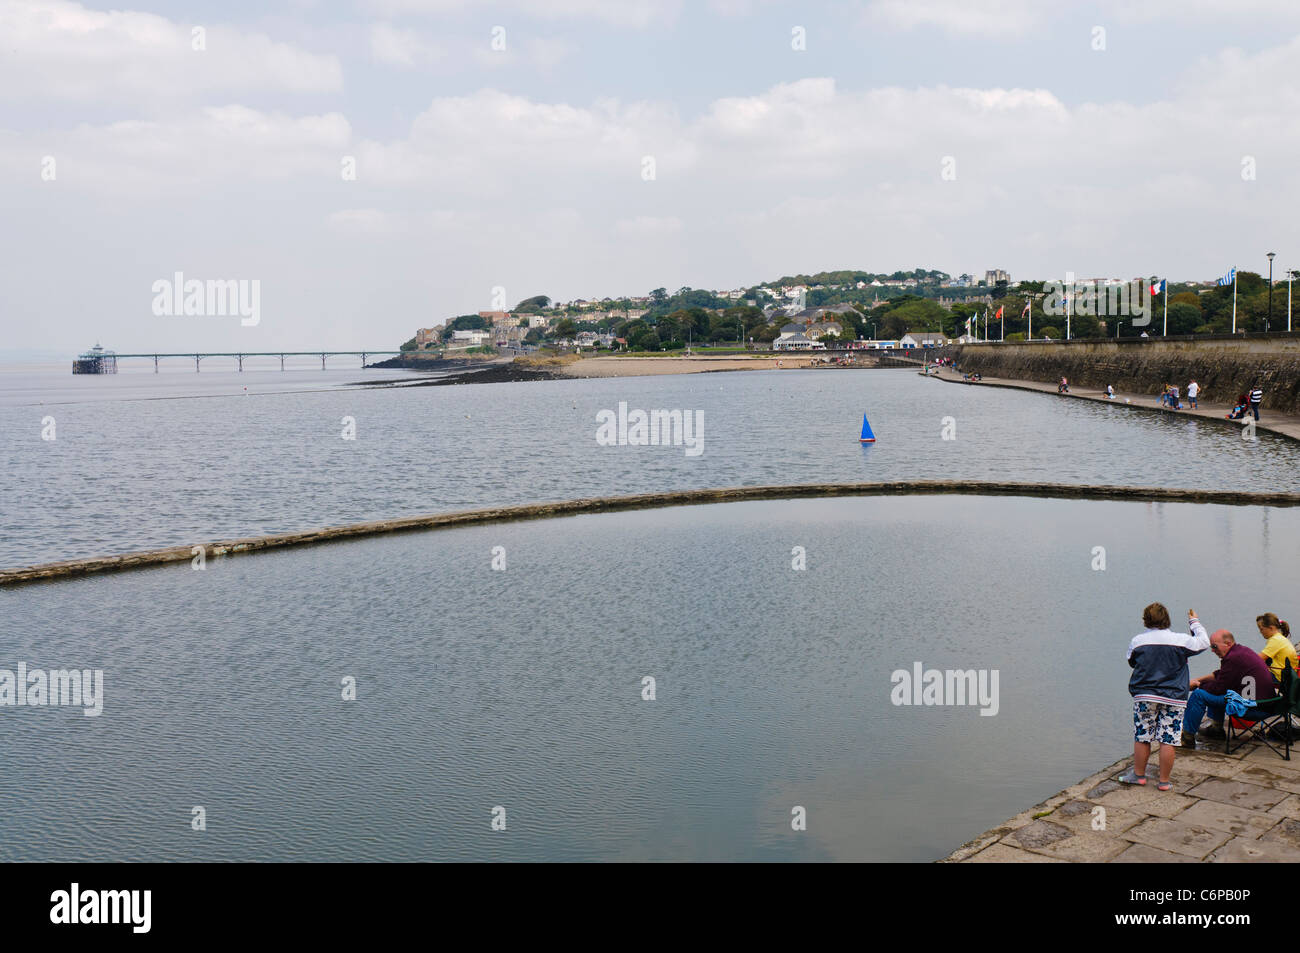 The Marine Lake, Clevedon, with Clevedon pier in the background - Stock Image